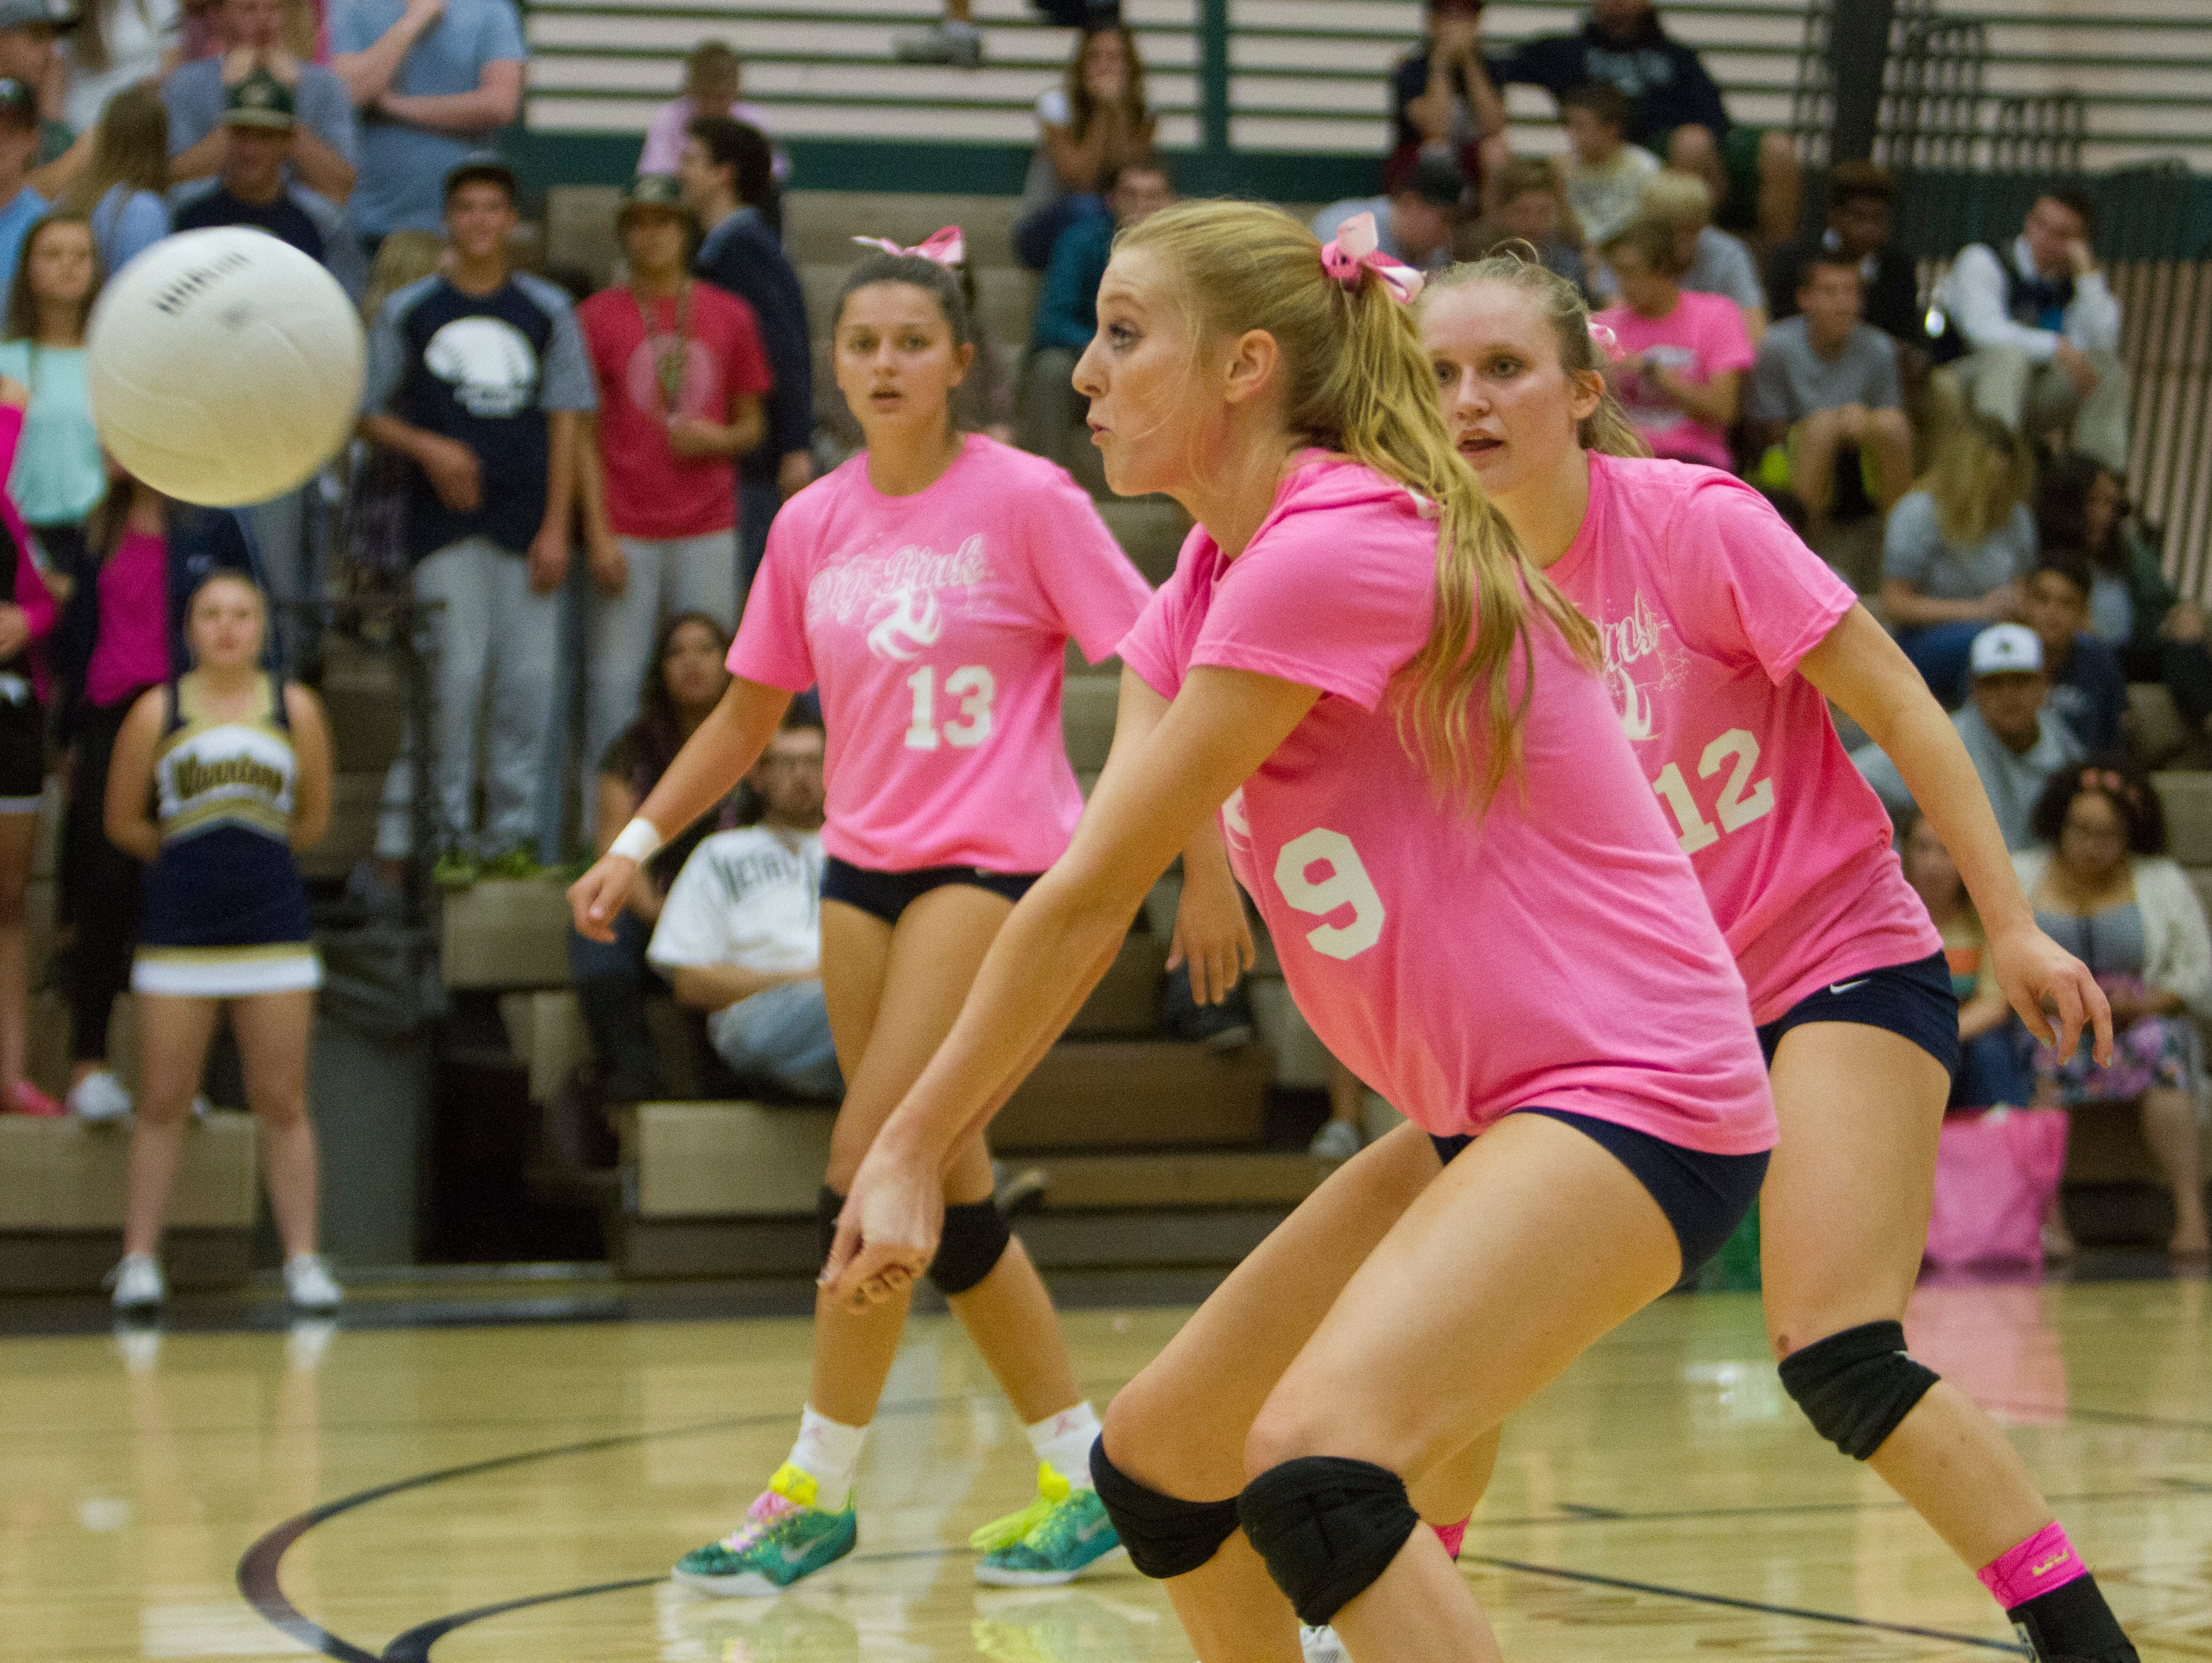 Snow Canyon's Nikenna Durante hits the ball with fellow seniors Shaylee Reed and Alexsa Parker moving into position. Snow Canyon finished the regular season with an undefeated region record.